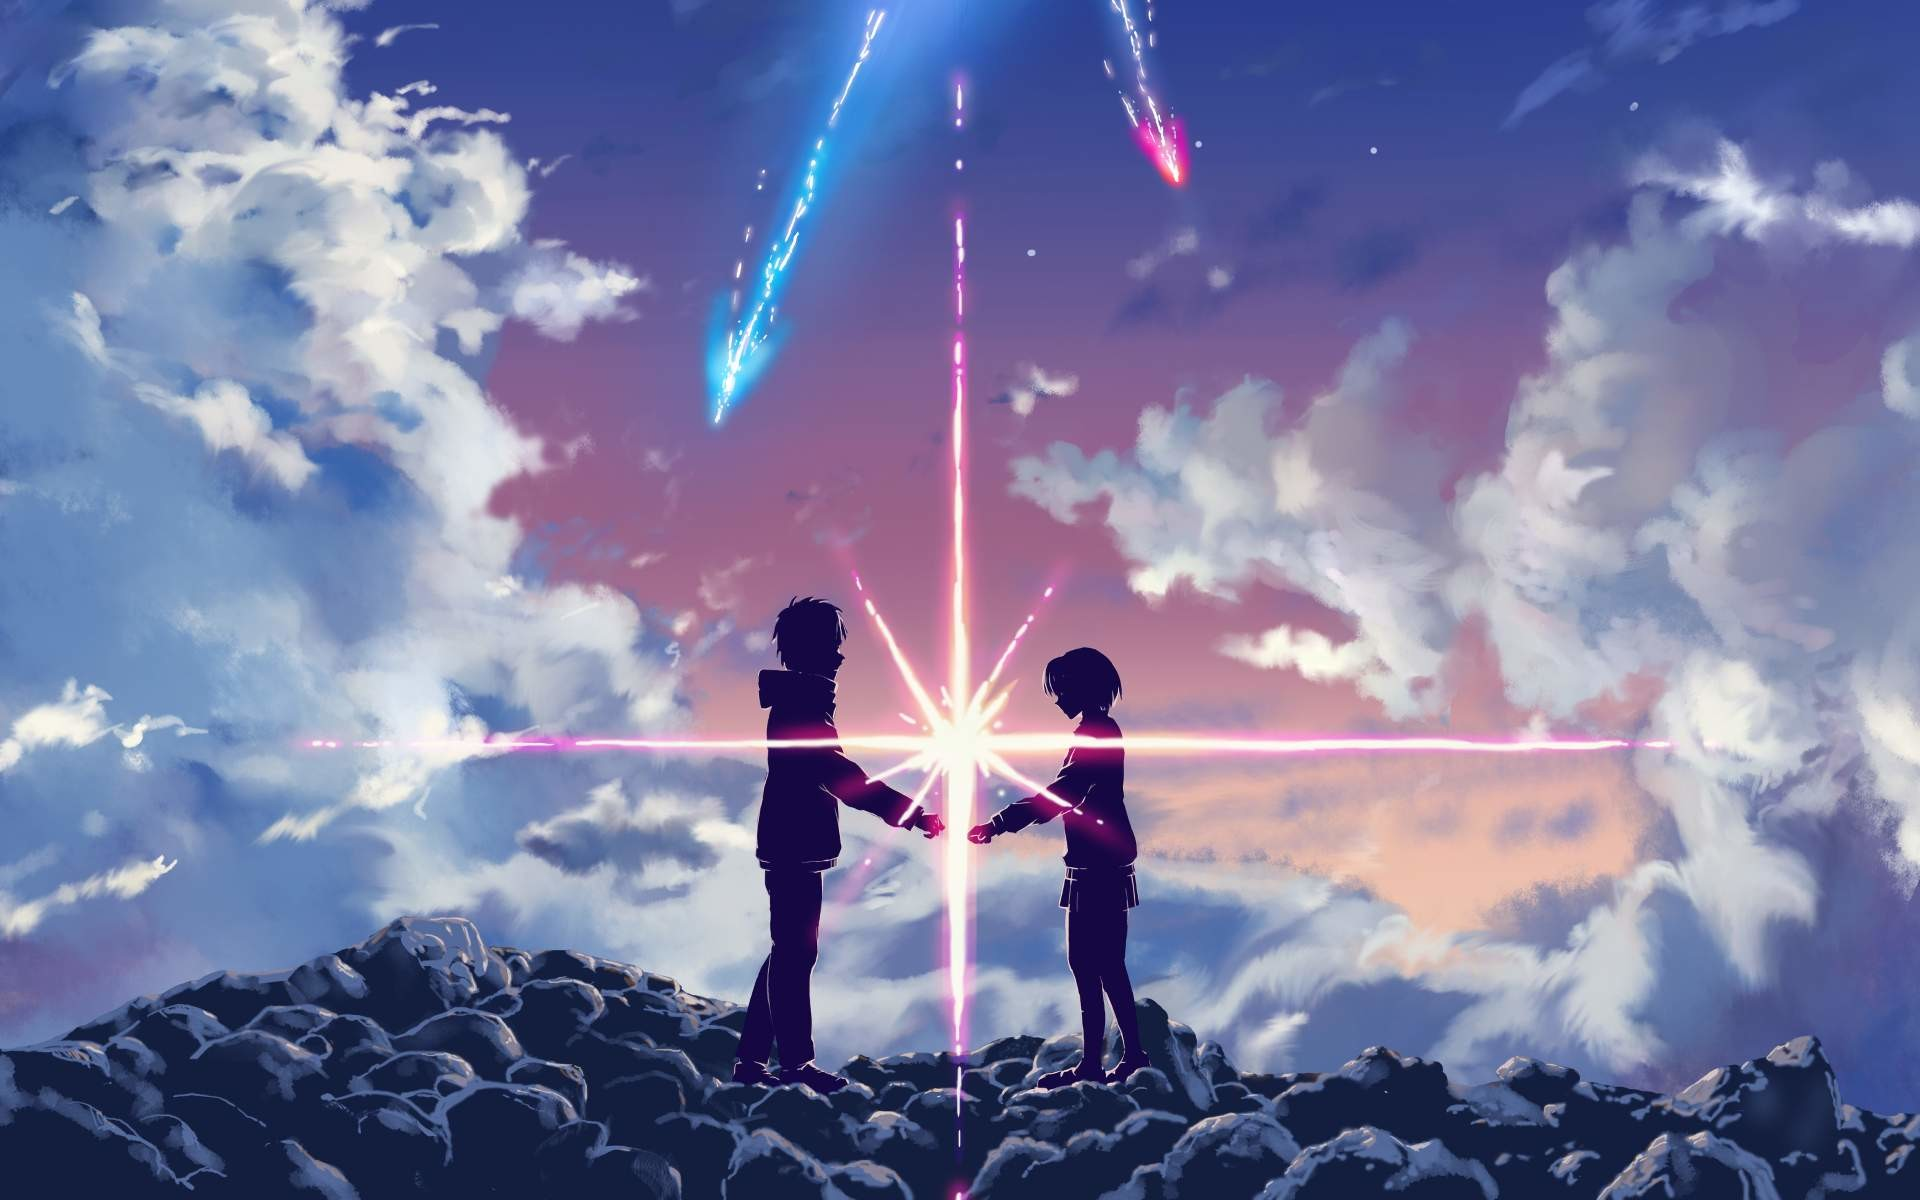 Wallpaper Anime Couple 76 Pictures